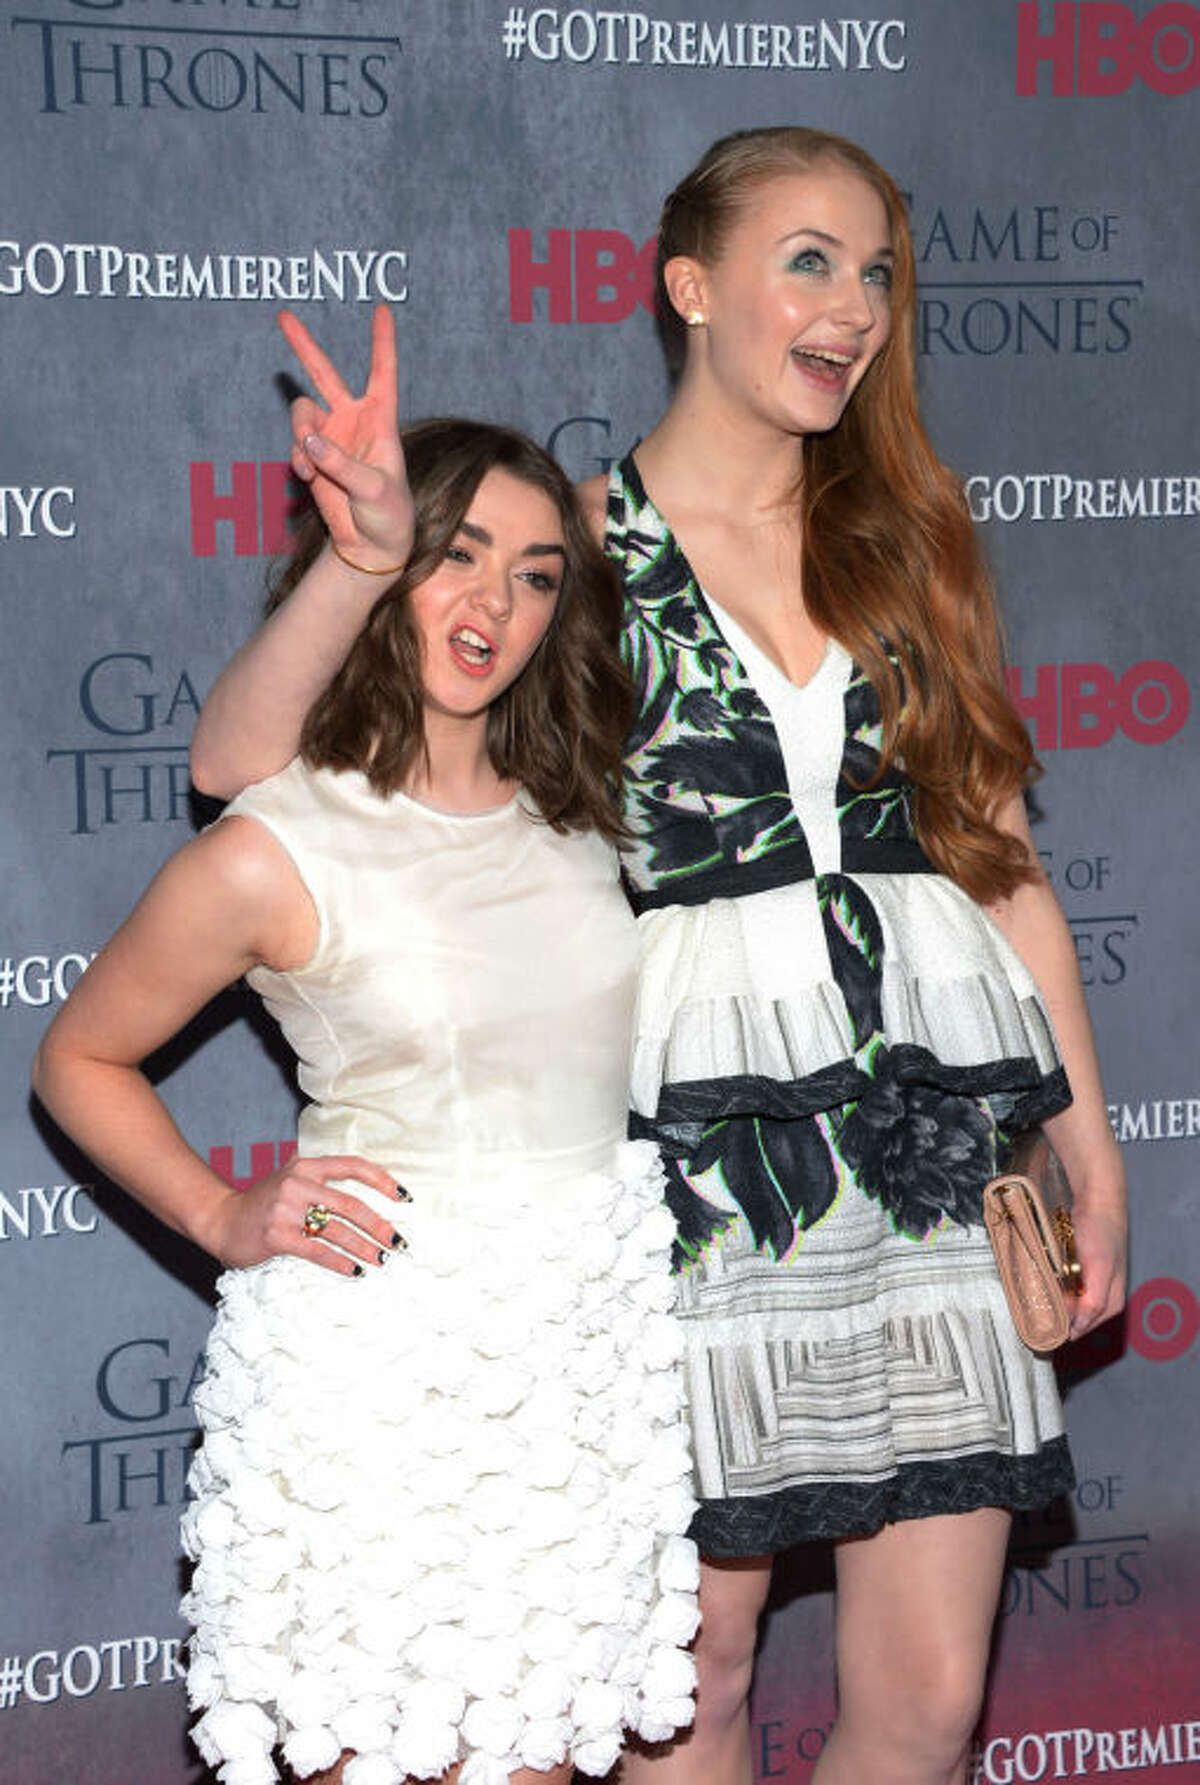 """Maisie Williams and Sophie Turner arrive at New York Premiere of """"Game of Thrones"""" Fourth Season on Tuesday, March 18, 2014, in New York. (Photo by Evan Agostini/Invision/AP)"""